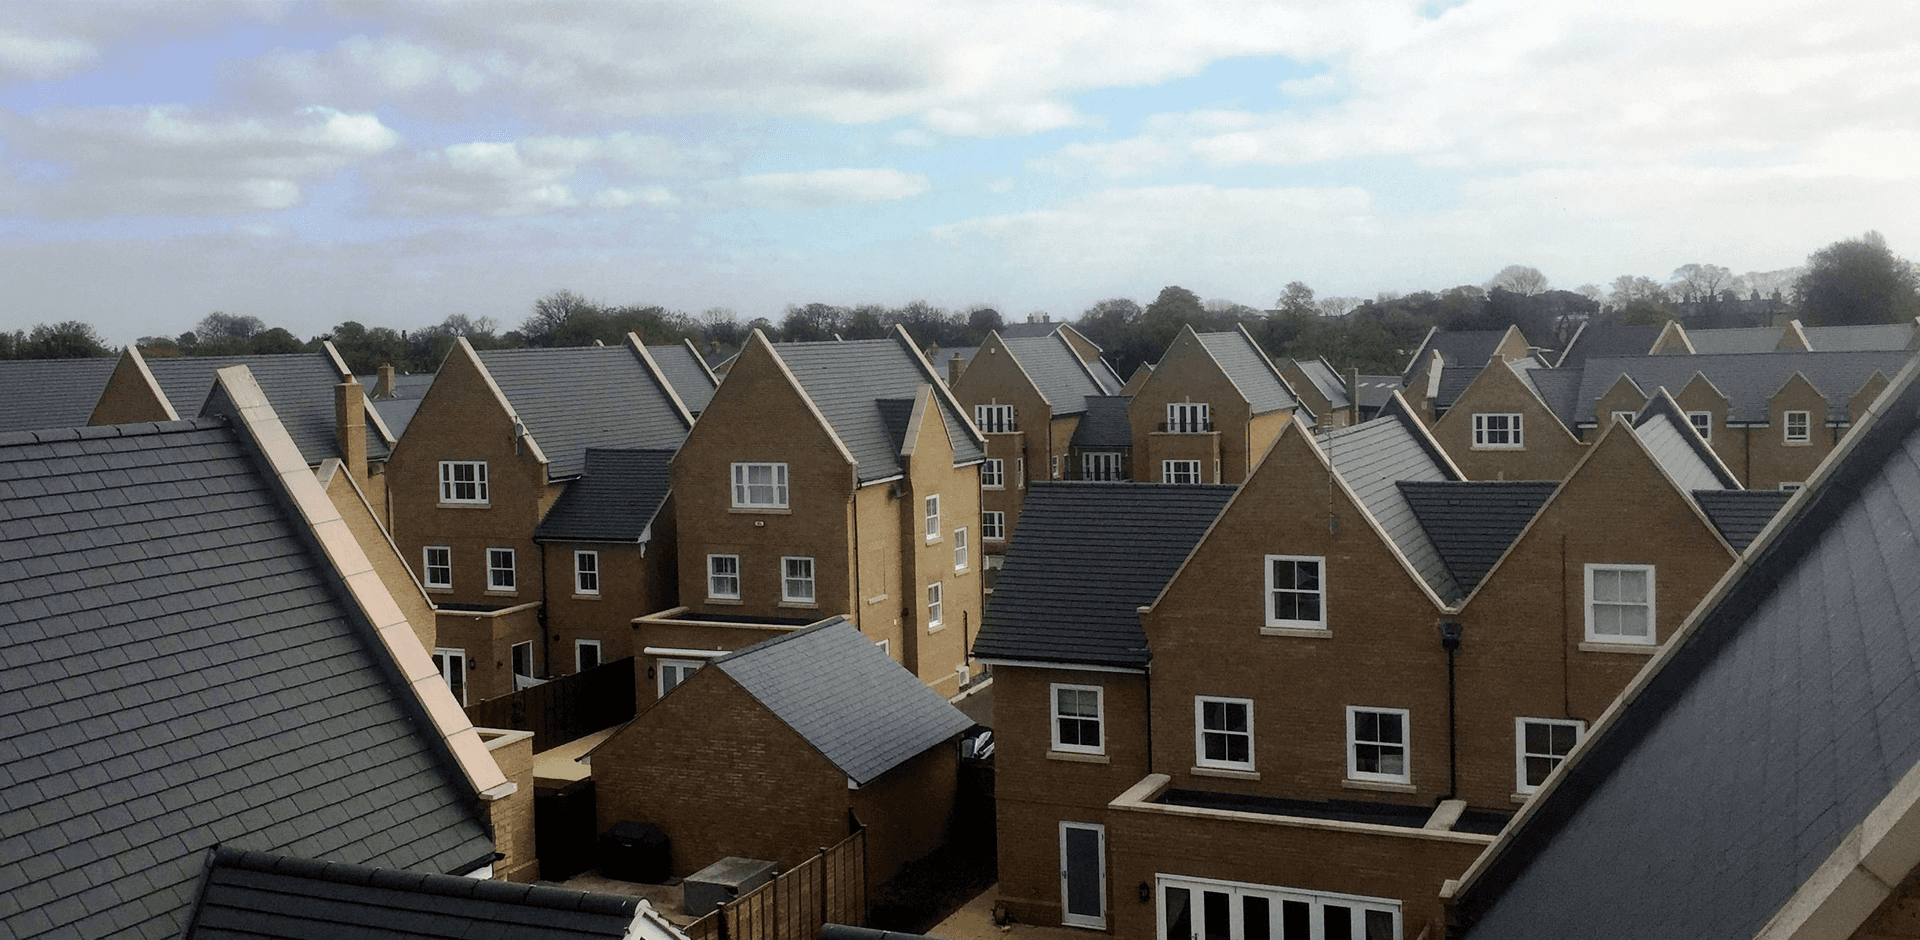 Sky view of roofs across a housing estate